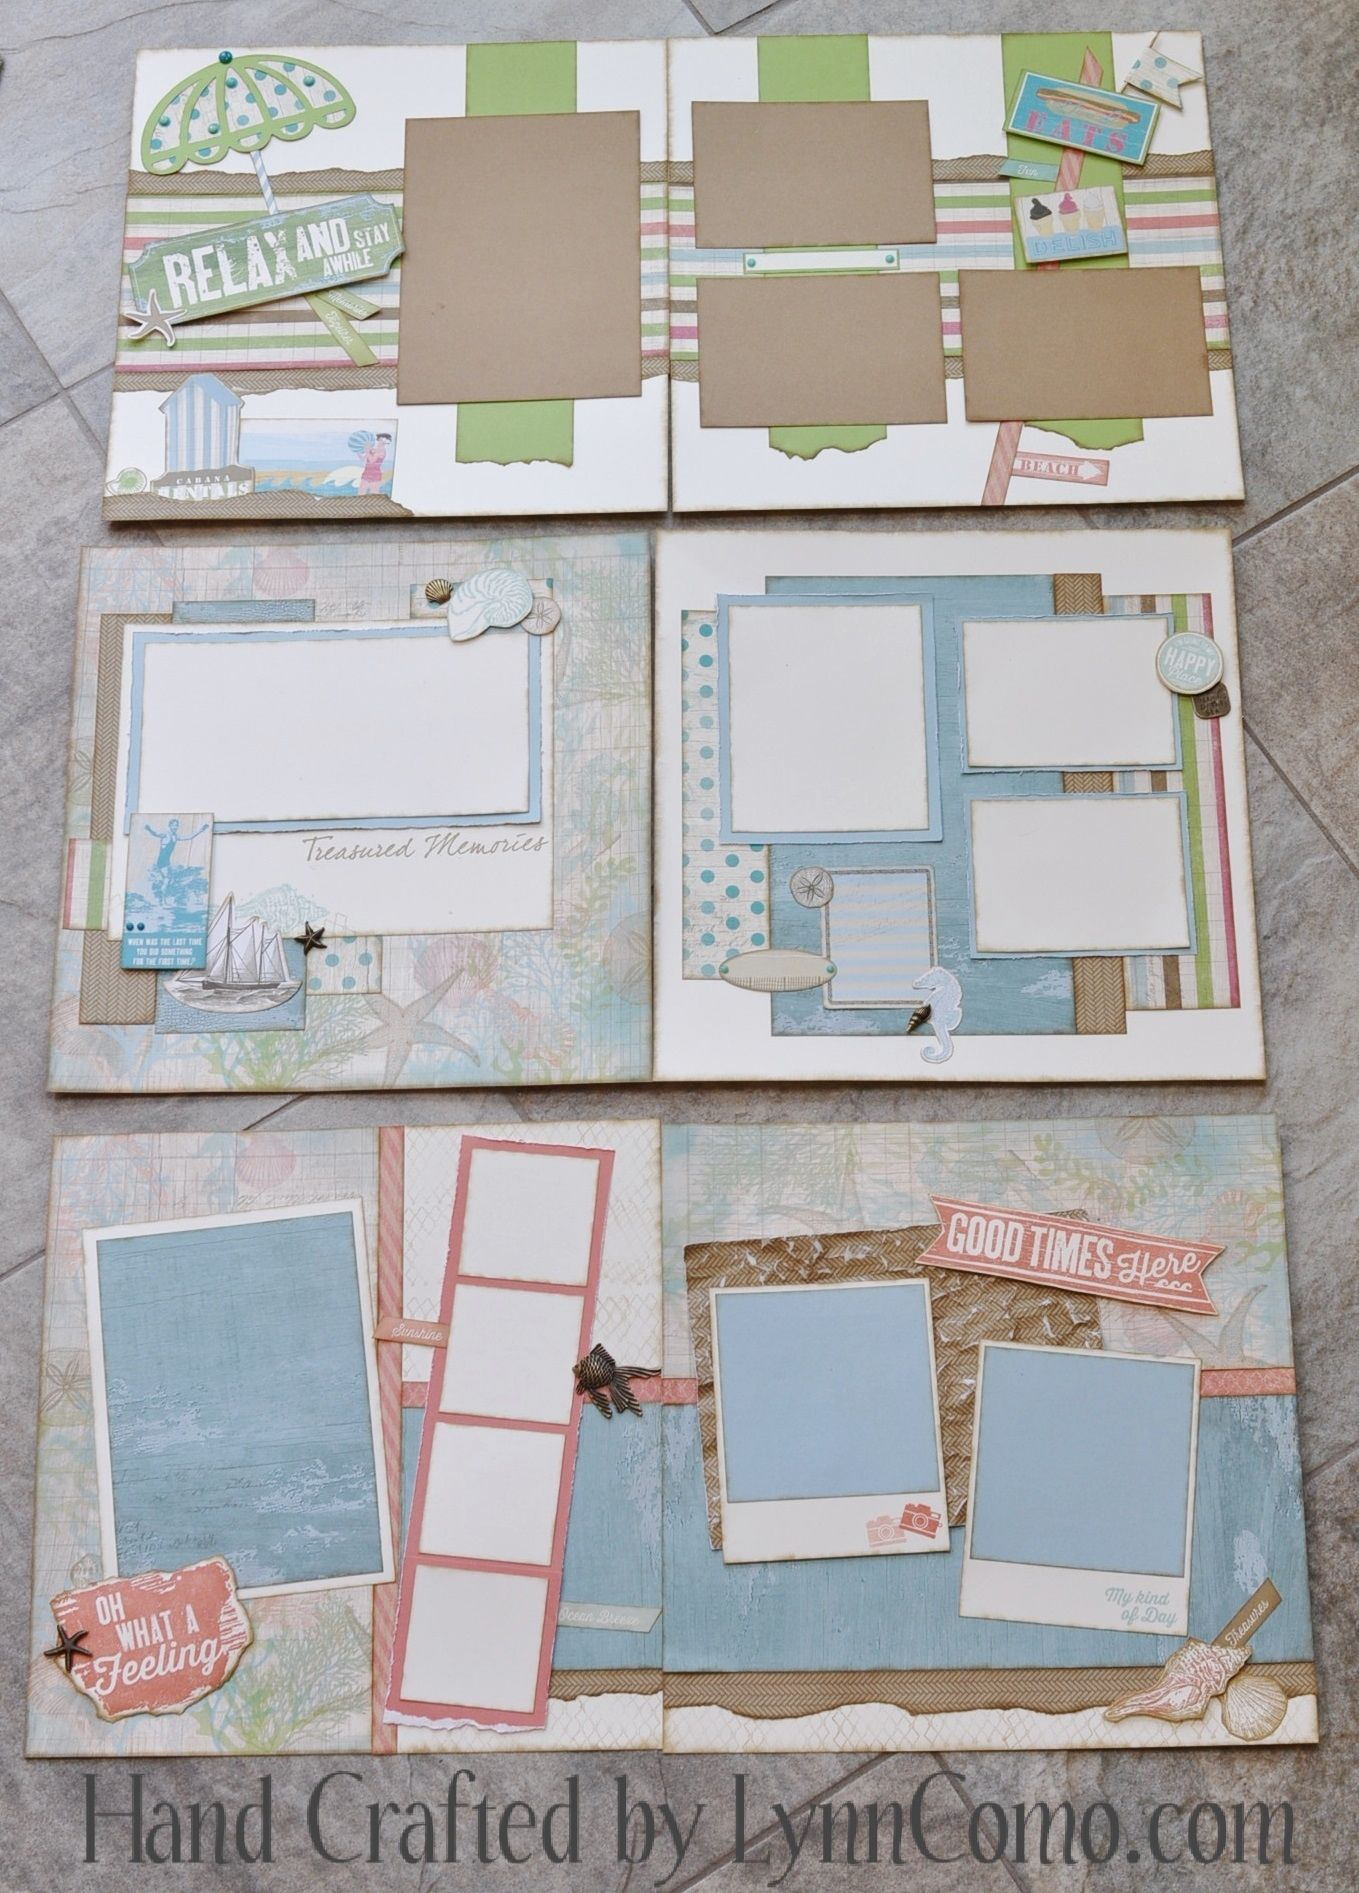 Seaside Kit of the Month ... fantastic new paper, stamps, accessories for your beach of vacation theme!  Read all about it here:  http://lynncomo.com/4474/seaside-kit-of-the-month-monthly-rewards-club/